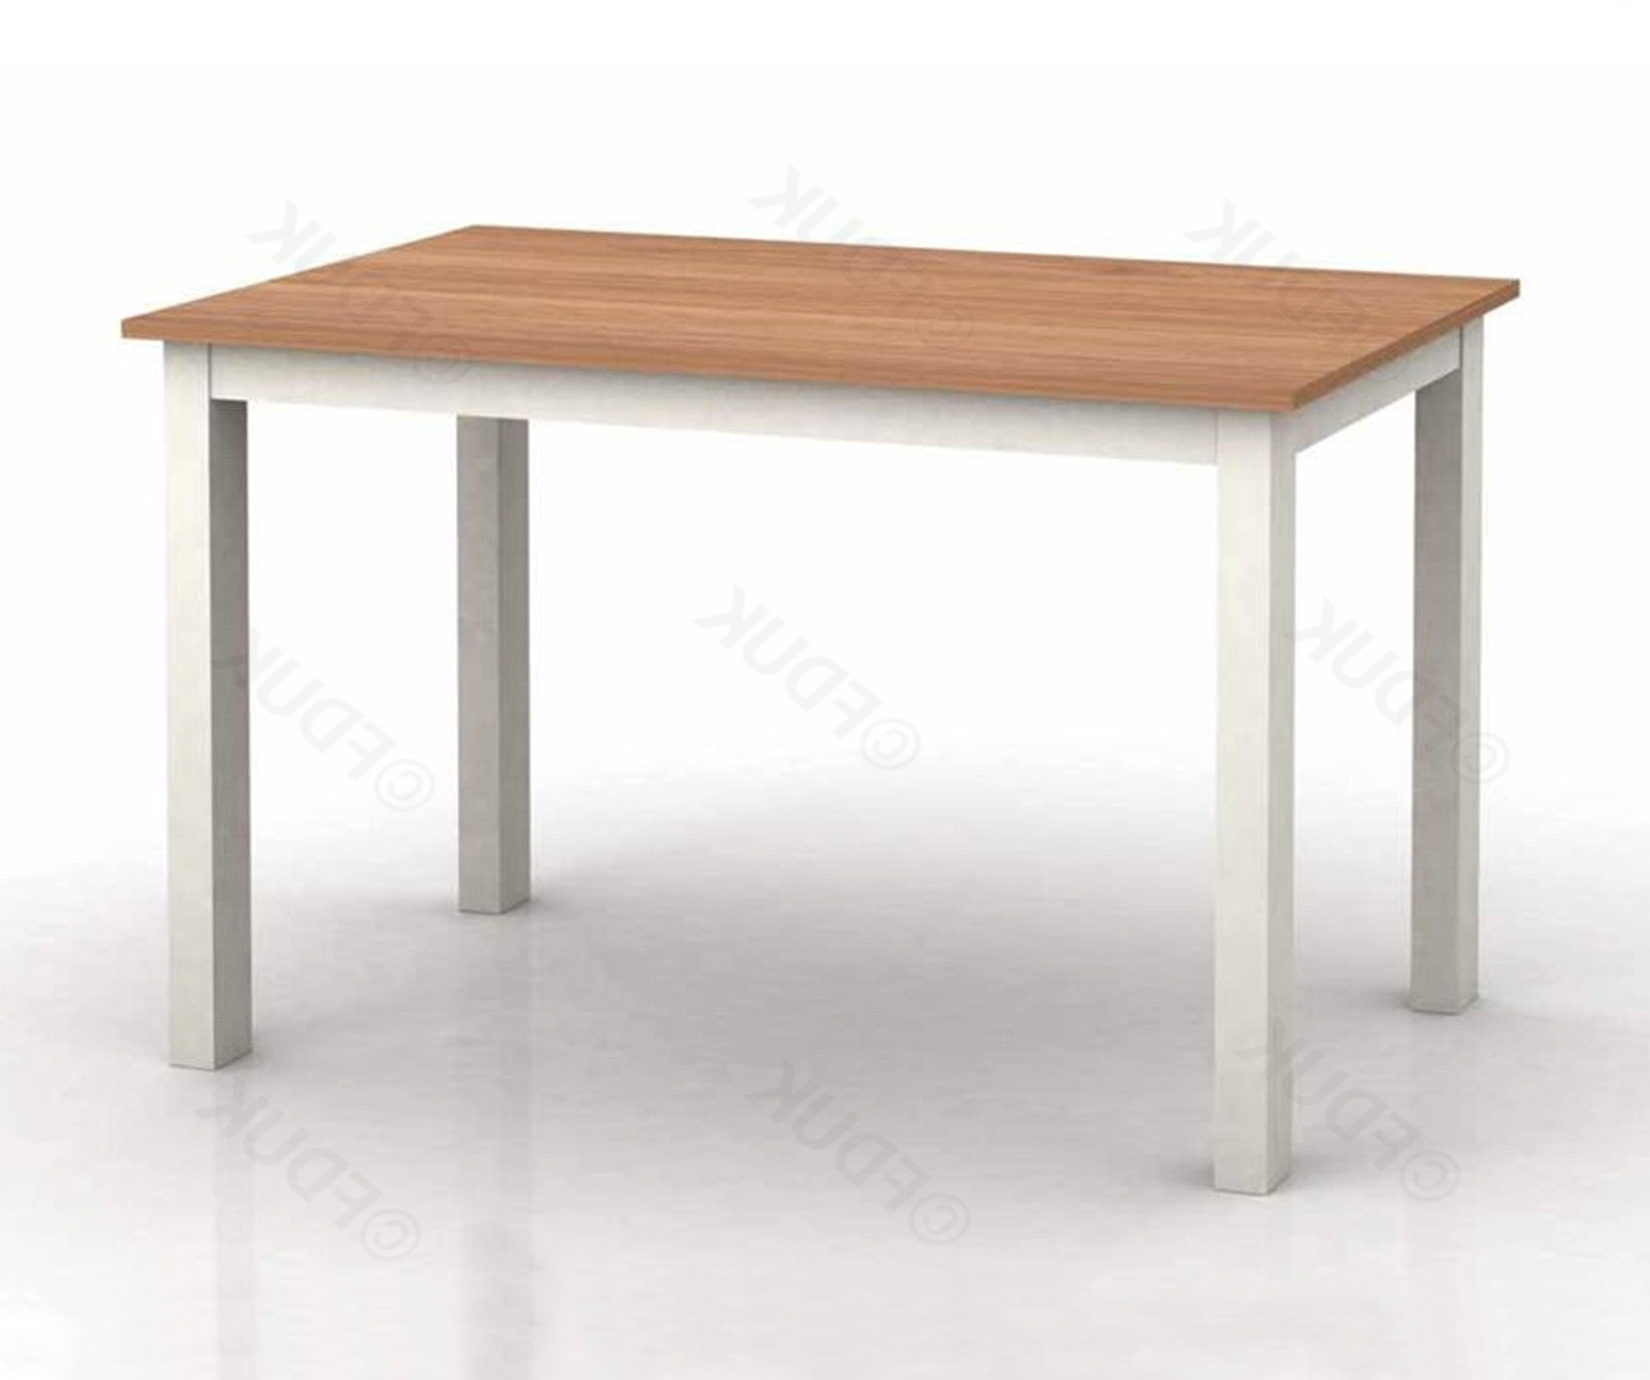 Cotswold Dining Tables Pertaining To Trendy Lpd Cotswold Dining Table Only Fduk Best Price Guarantee We Will Beat Our  Competitors Price! Give Our Sales Team A Call On 0116 235 77 86 And We Will (View 10 of 25)